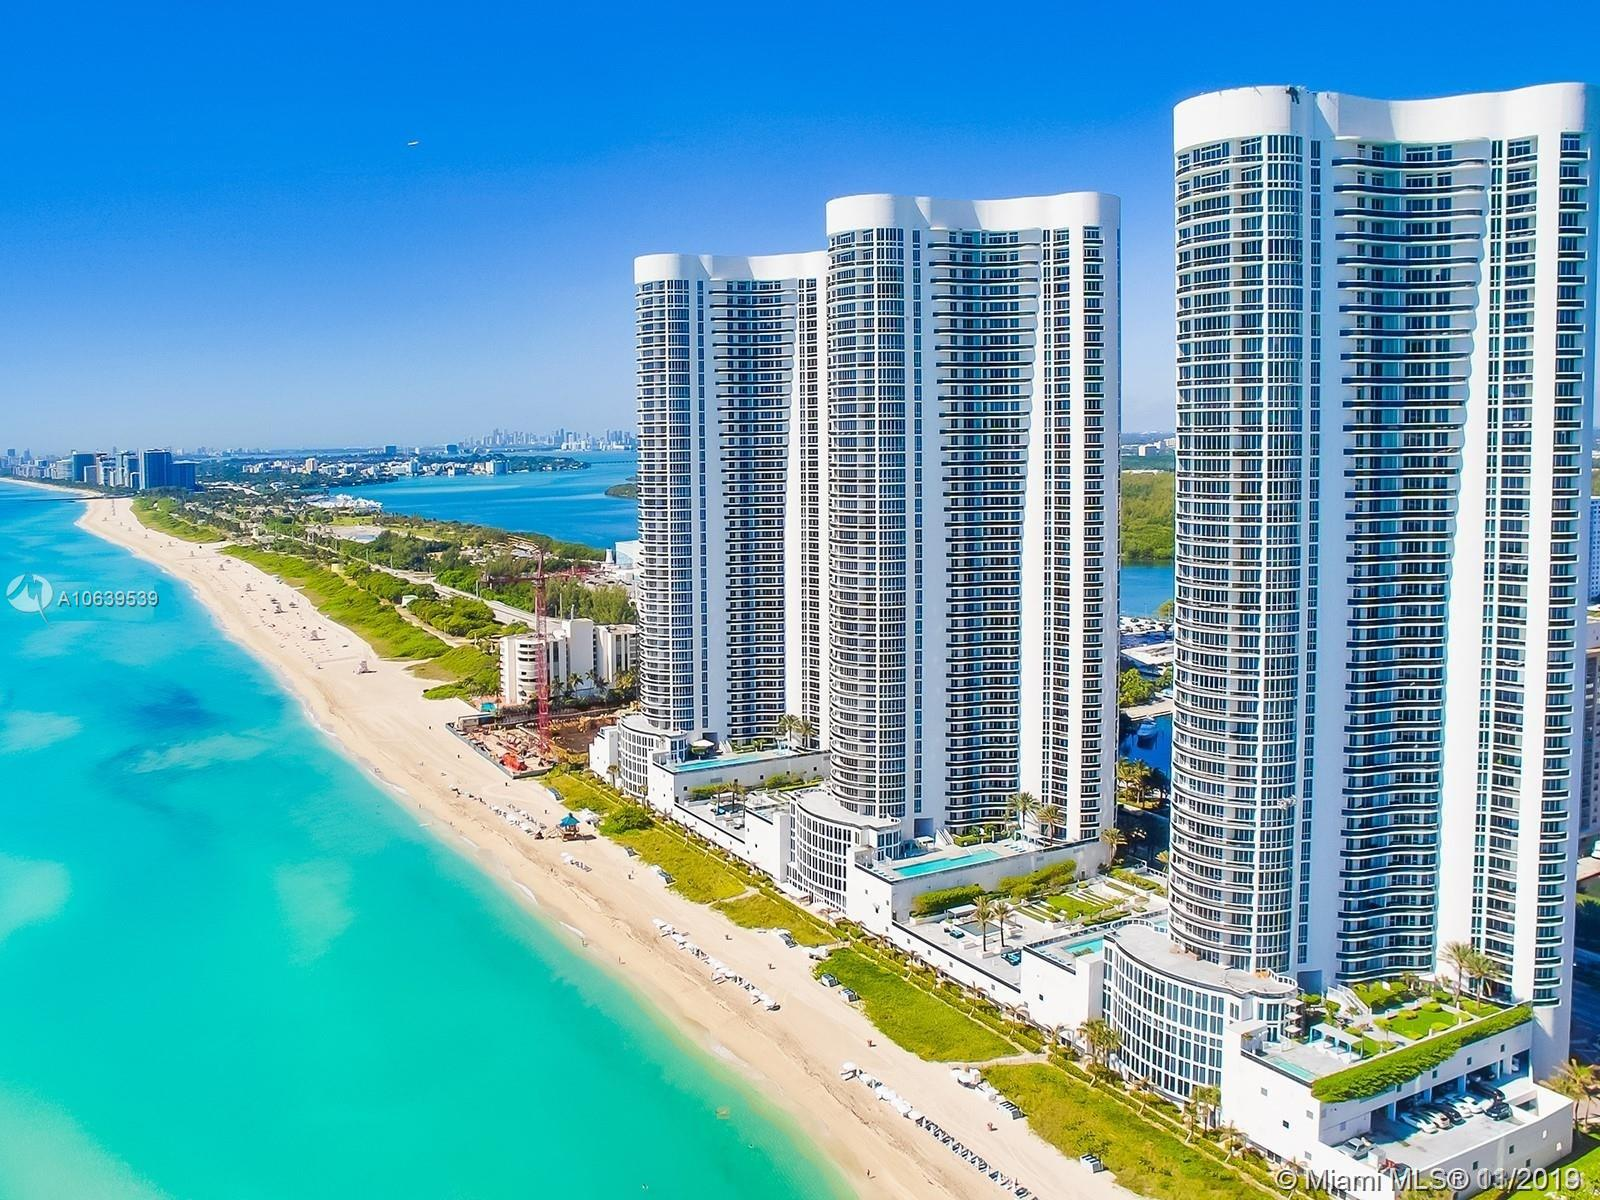 16001 Collins Ave, 701 - Sunny Isles Beach, Florida